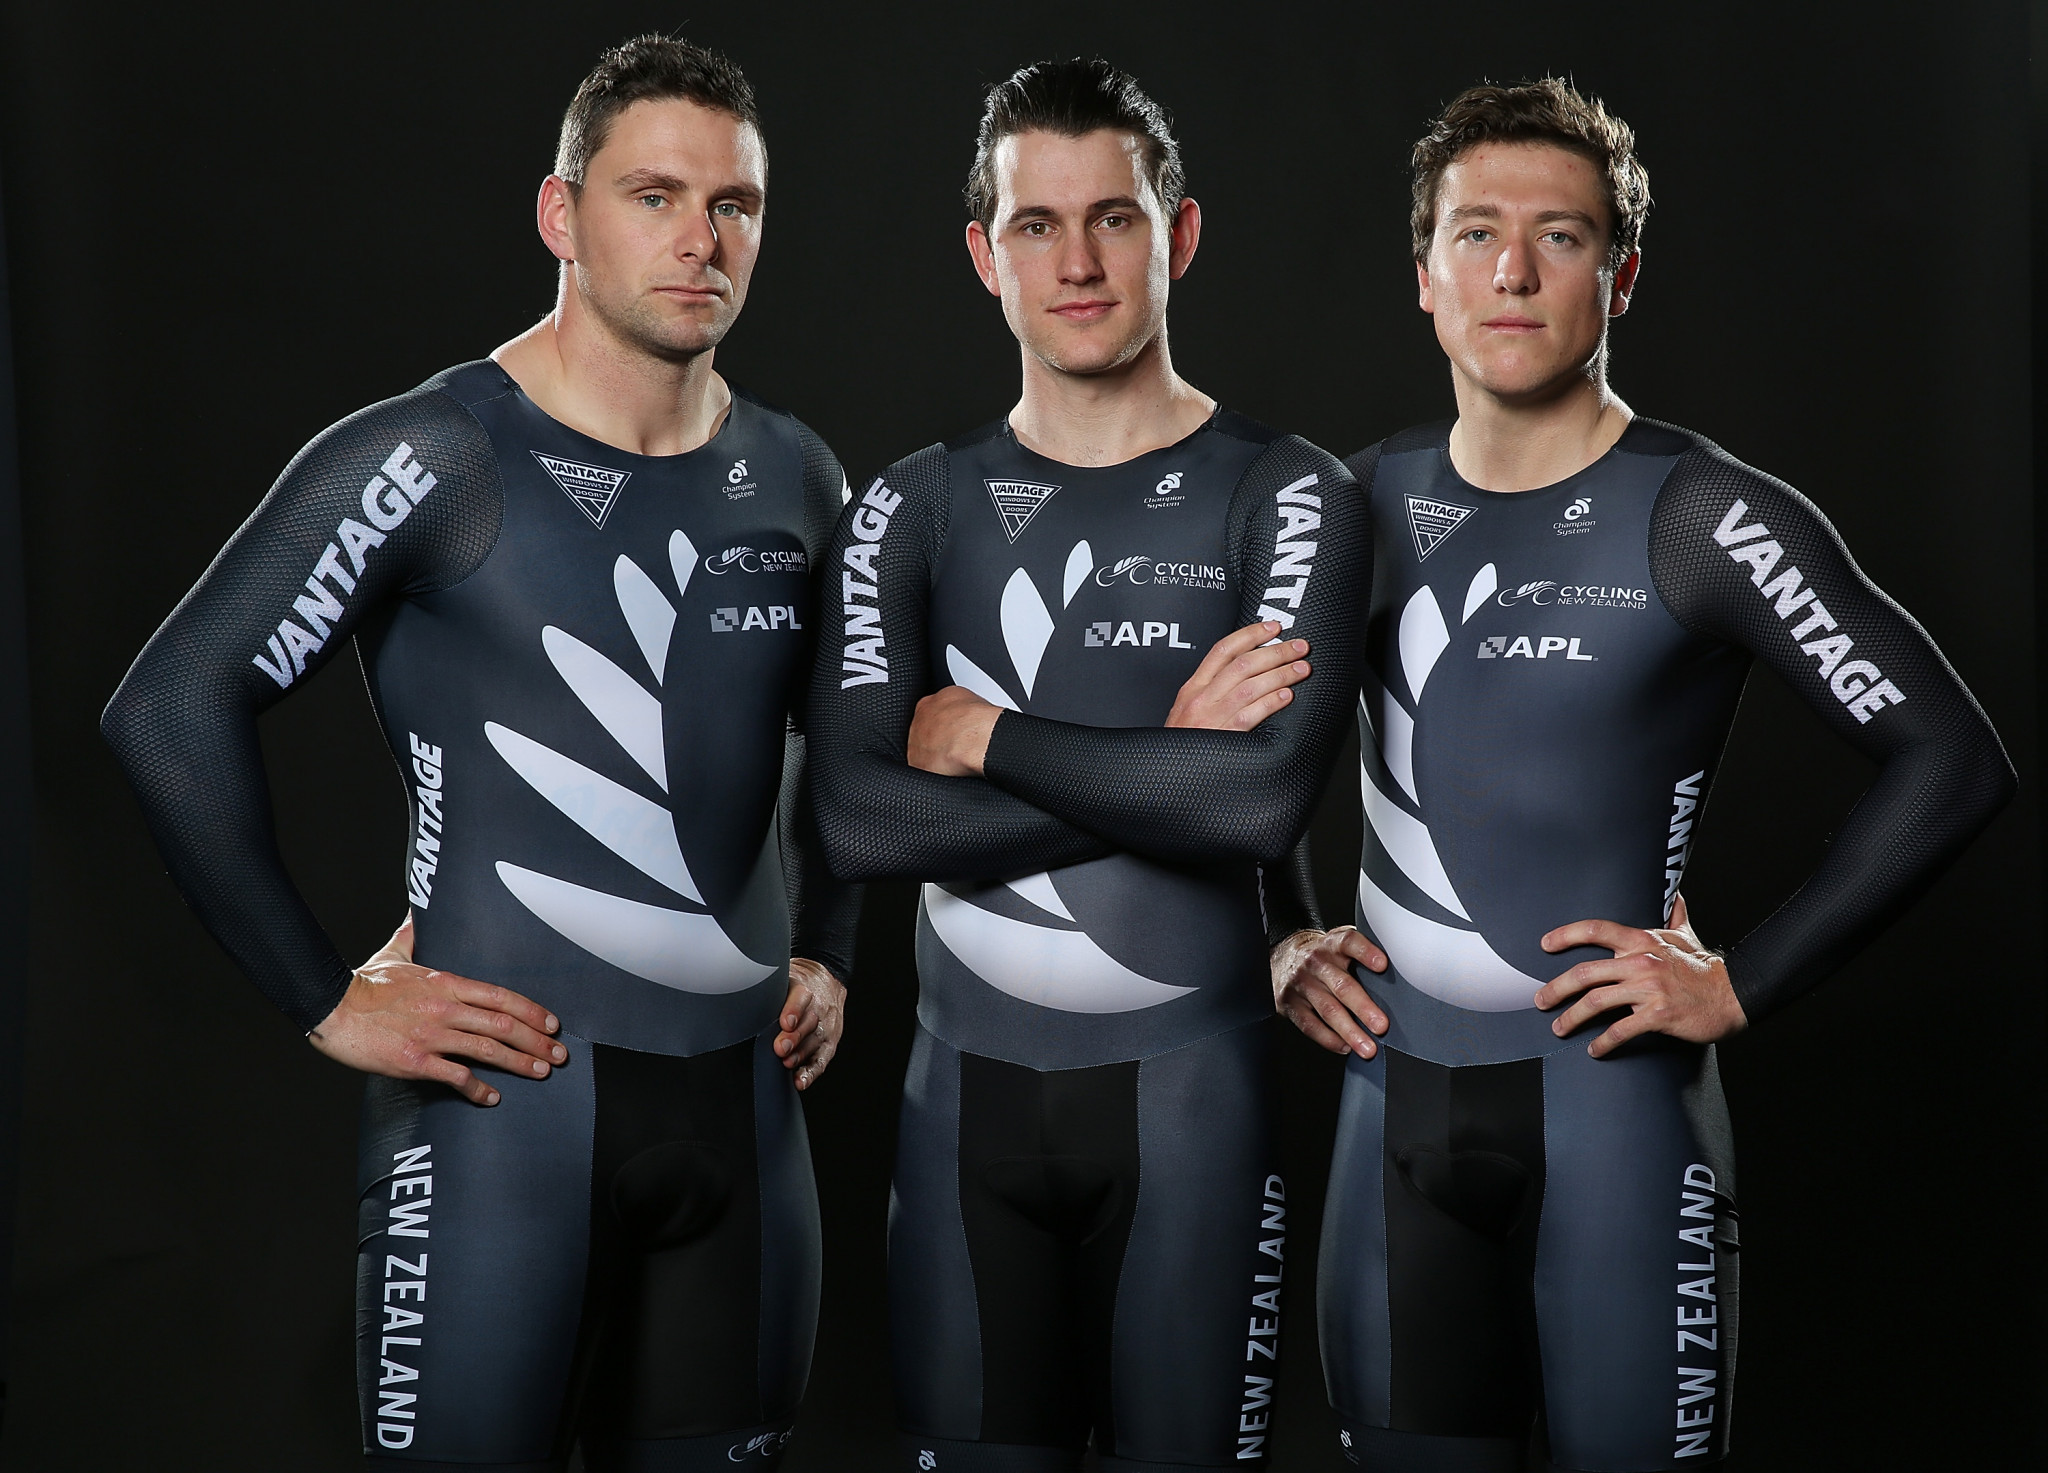 Defending champions and Olympic gold medal rower lead New Zealand cycling team at Gold Coast 2018